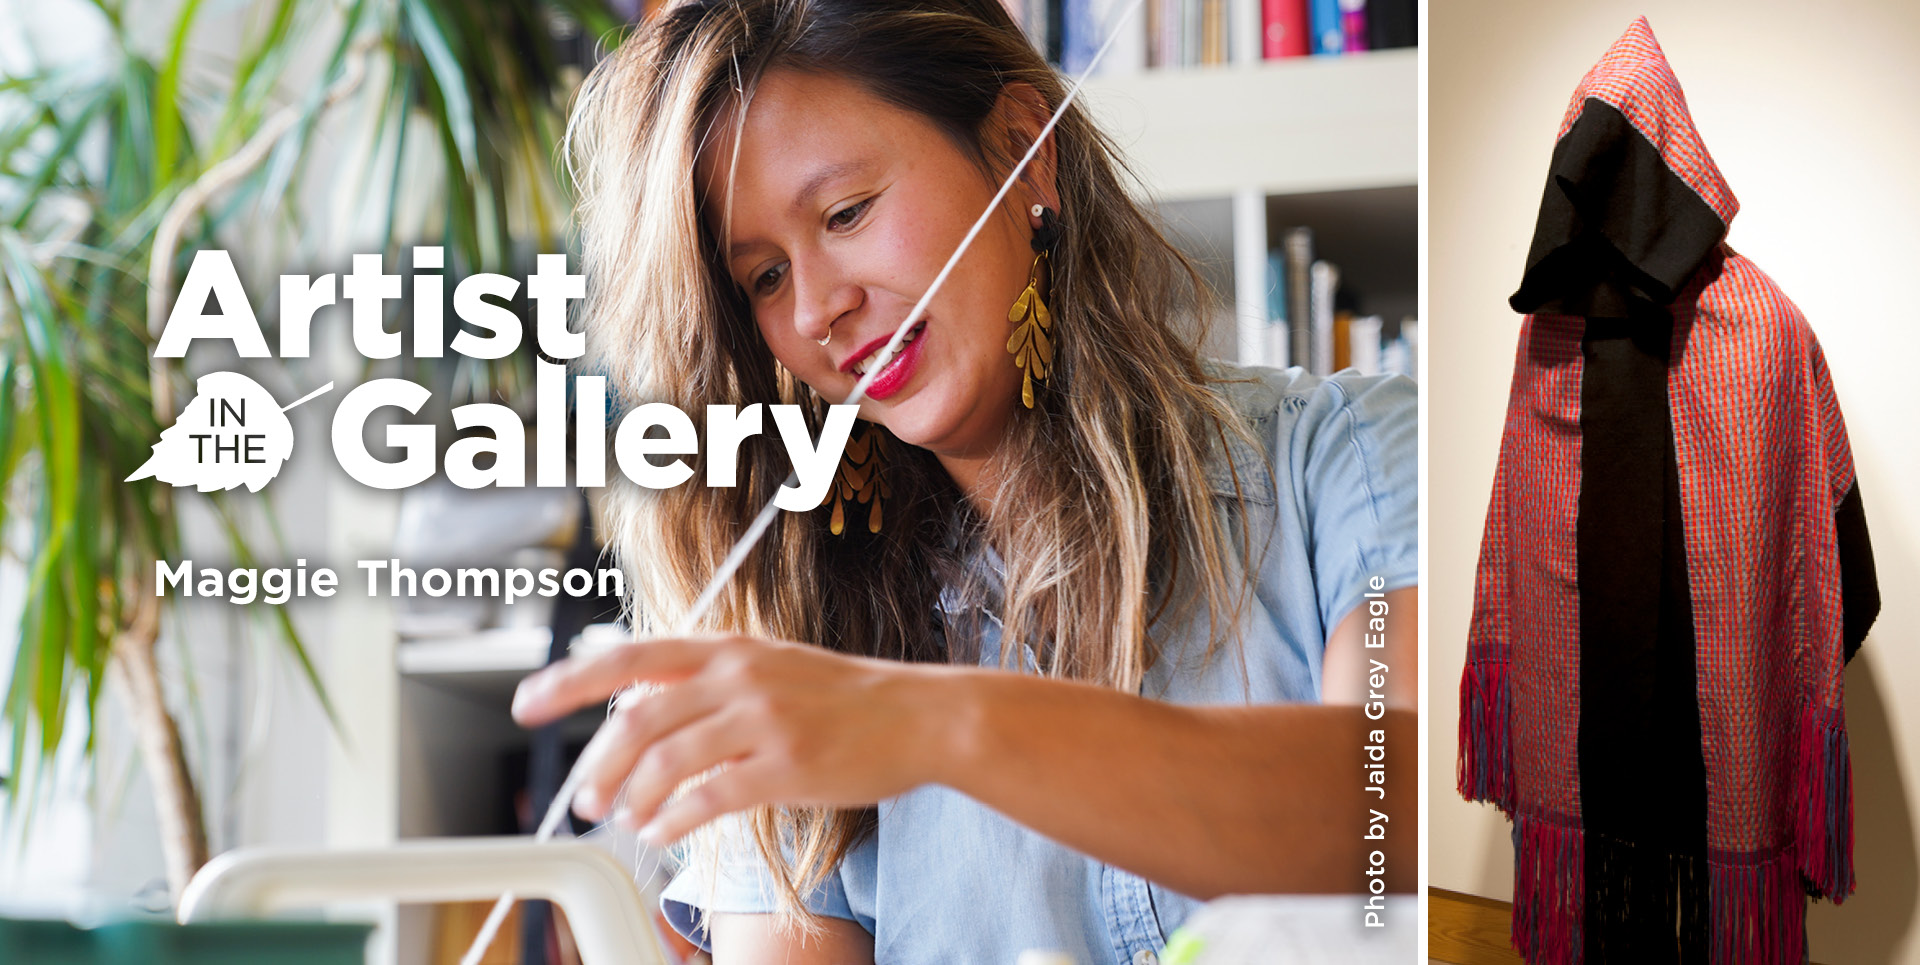 Artist in the gallery.